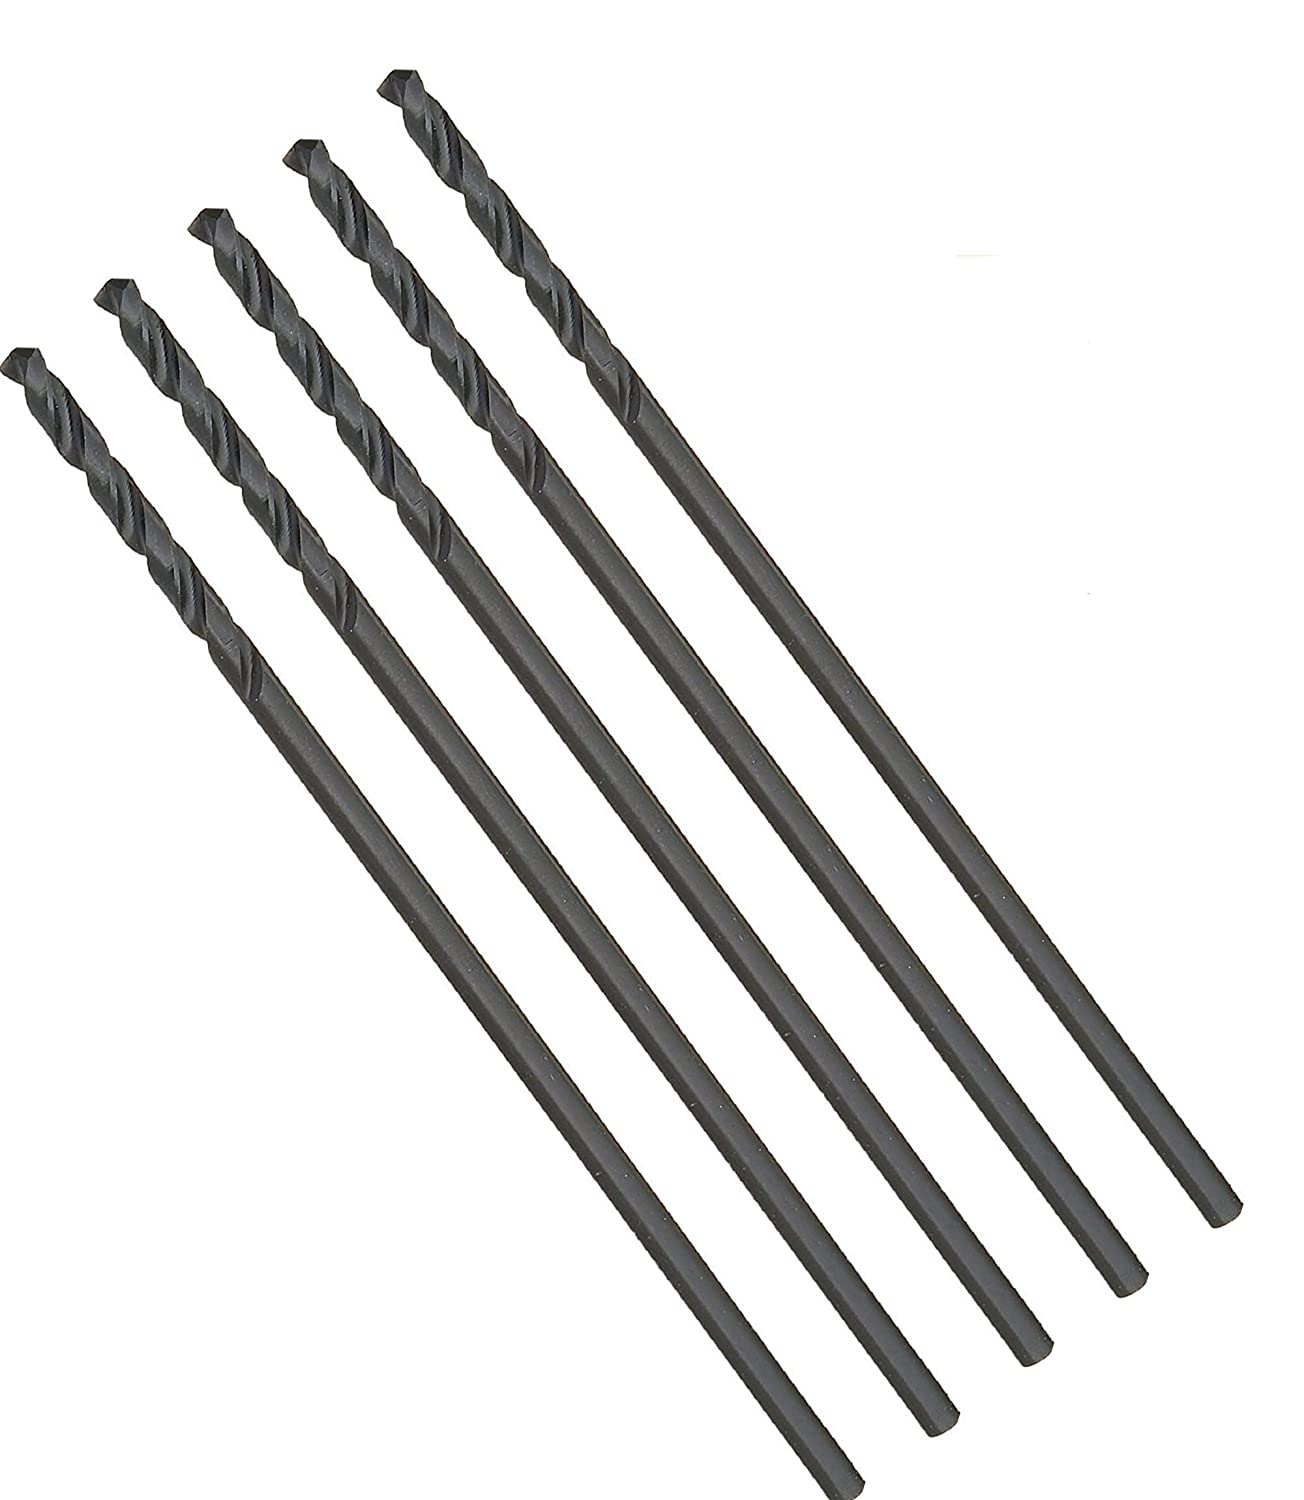 3 Pcs Pack 1/2 Inch High Speed Steel HSS Aircraft Extension Long Drill Bits Length 12 Inch, 135 Degree,Split Point, Drilling deep holes in metal and Steel Bright Finished (1/2 x 12 inch) MAX-CRAFT